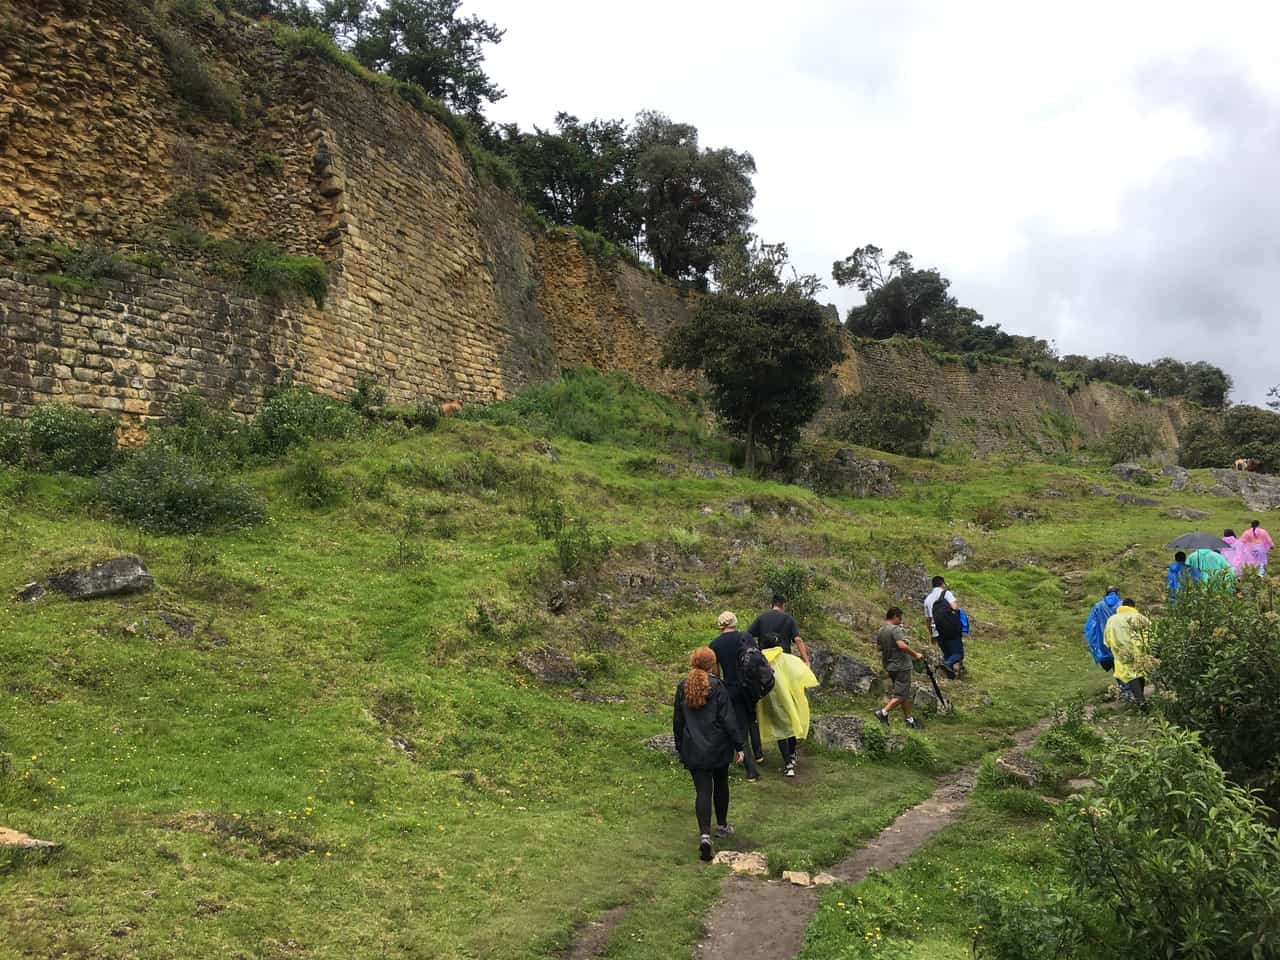 Visitors trekking the last few stretches to the entrance of the great ruins of Kuelap, Peru.